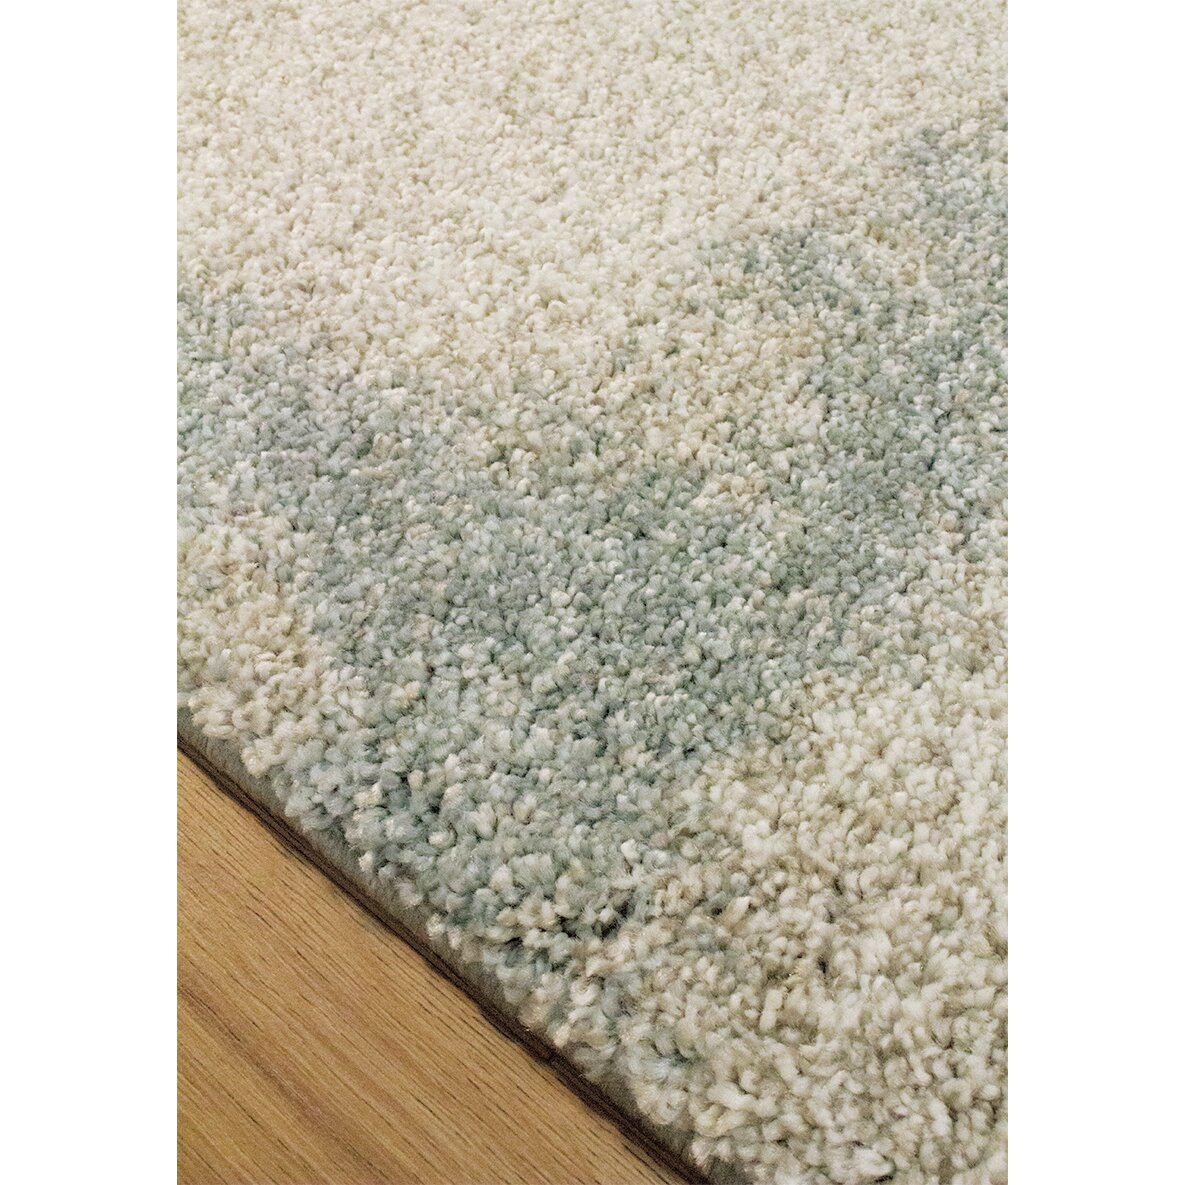 Kalora Sable Cream Blue Area Rug